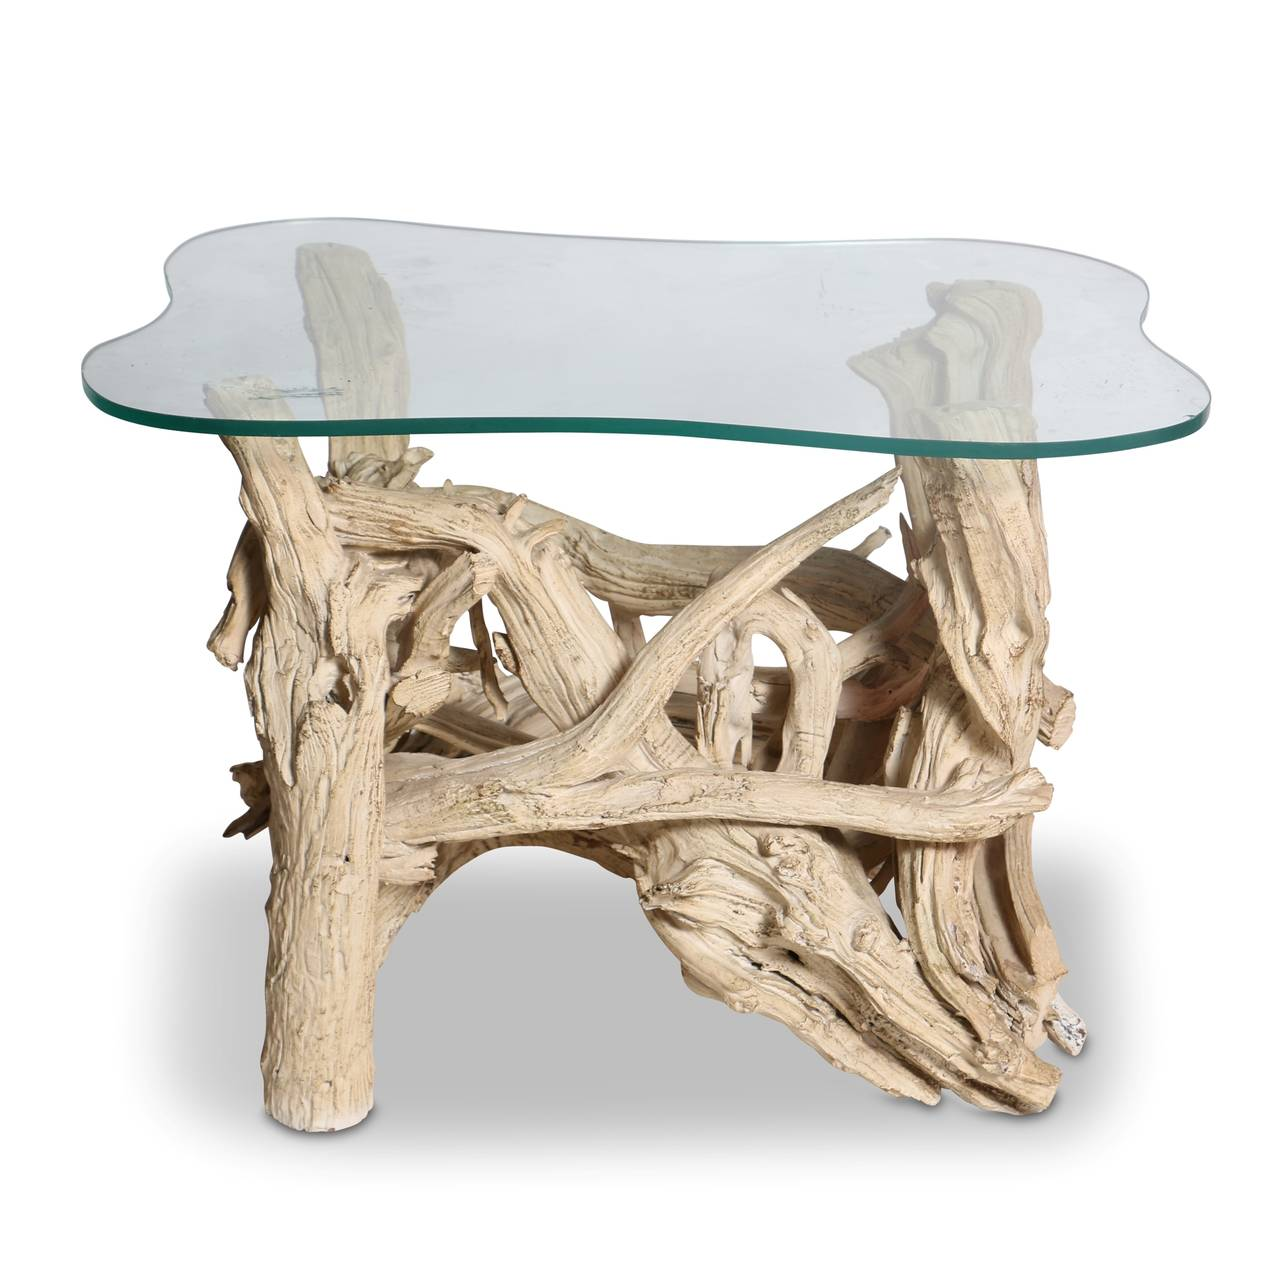 Driftwood End Table: Mid-Century Gesso Washed Driftwood End Table, Circa 1950s